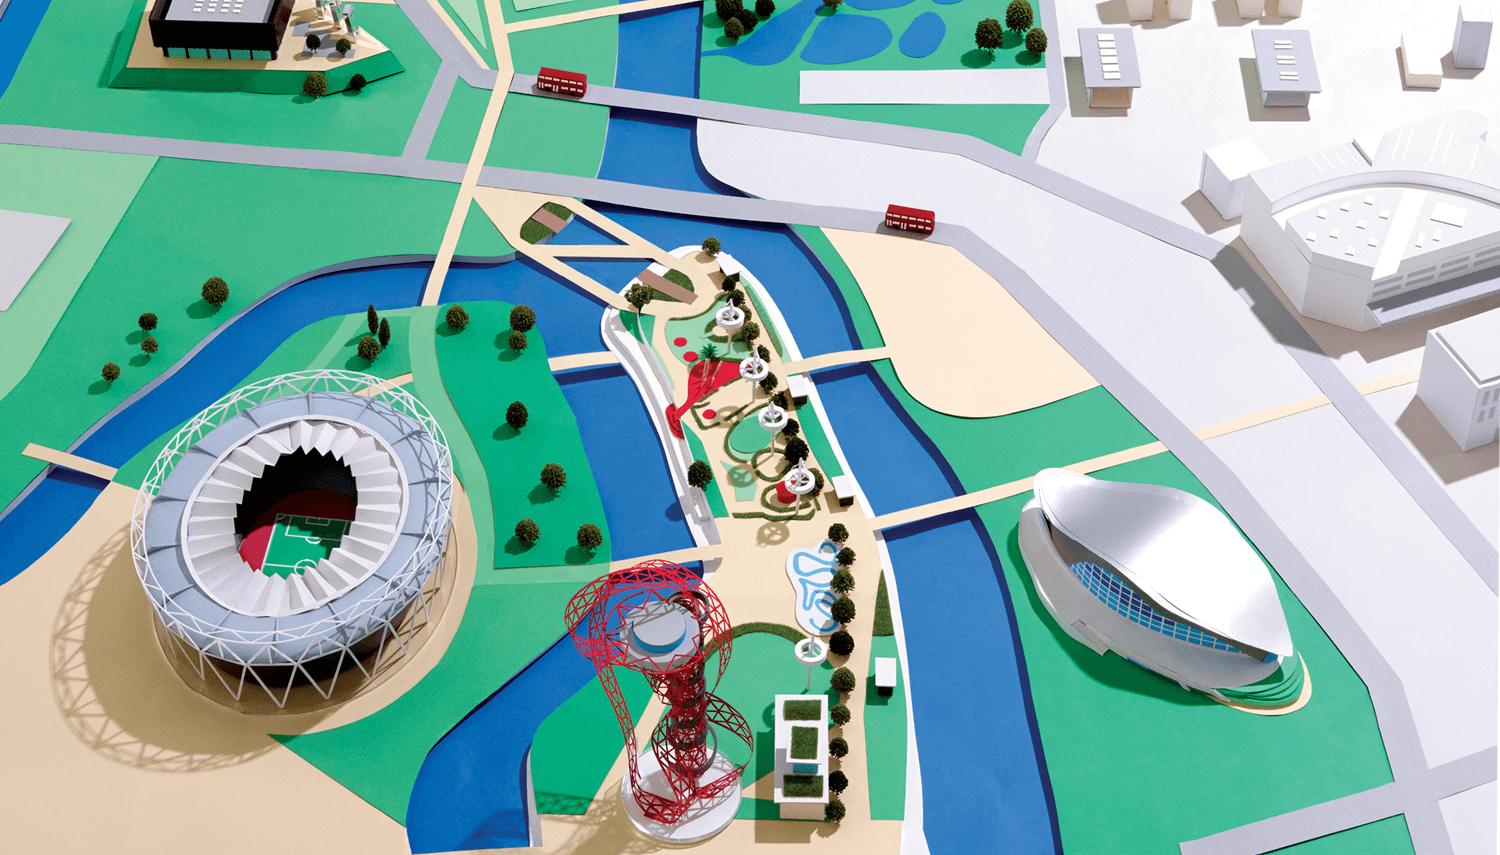 Queen Elizabeth Olympic Park Map Hattie Newman builds paper map for Queen Elizabeth's Olympic park Queen Elizabeth Olympic Park Map